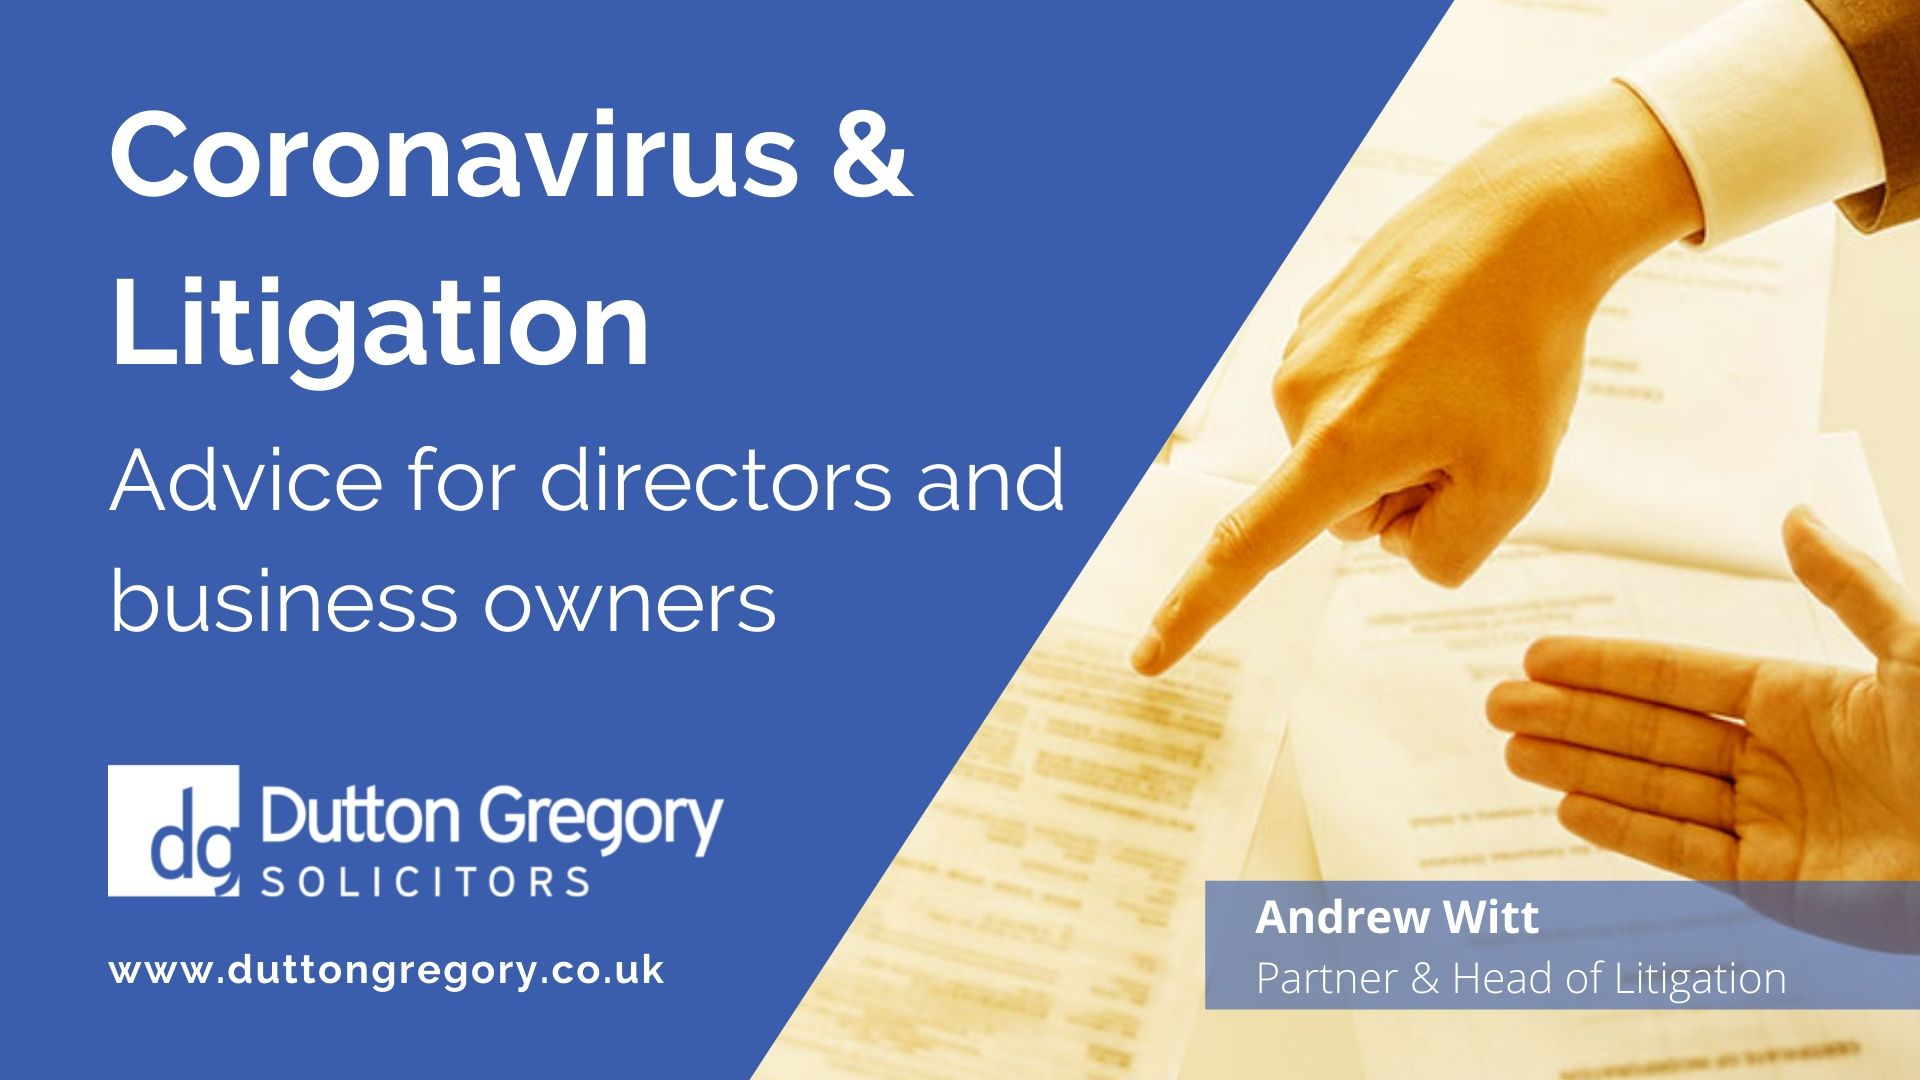 Commercial Litigation Update: advice for directors and business owners during coronavirus